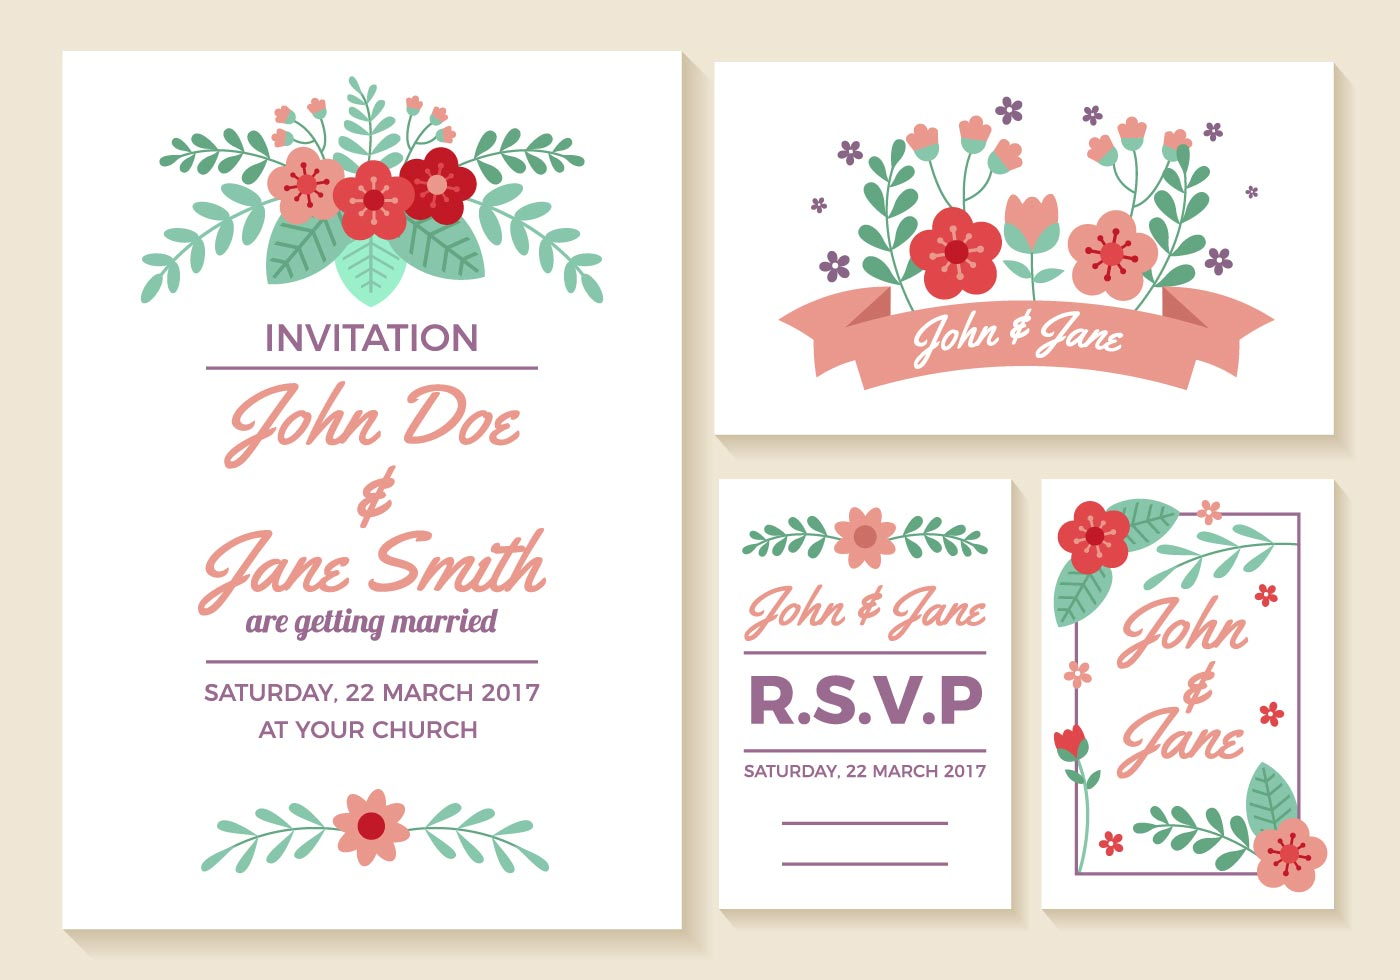 Wedding Invitation Cards Vector - Download Free Vector Art, Stock ...